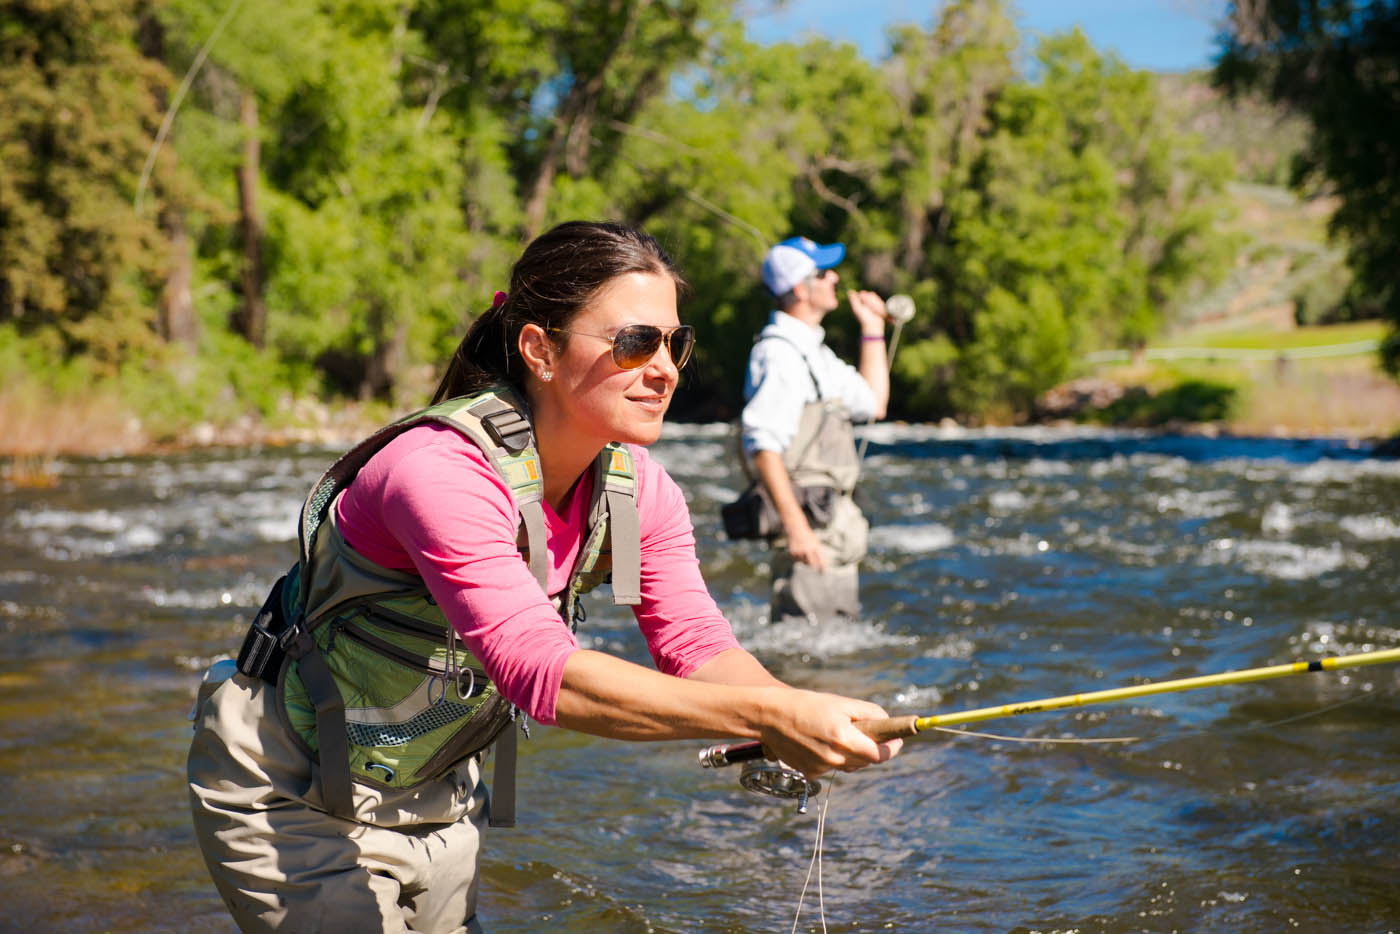 Woman flyfishing in Vail, CO, one of the fun things to do in summer